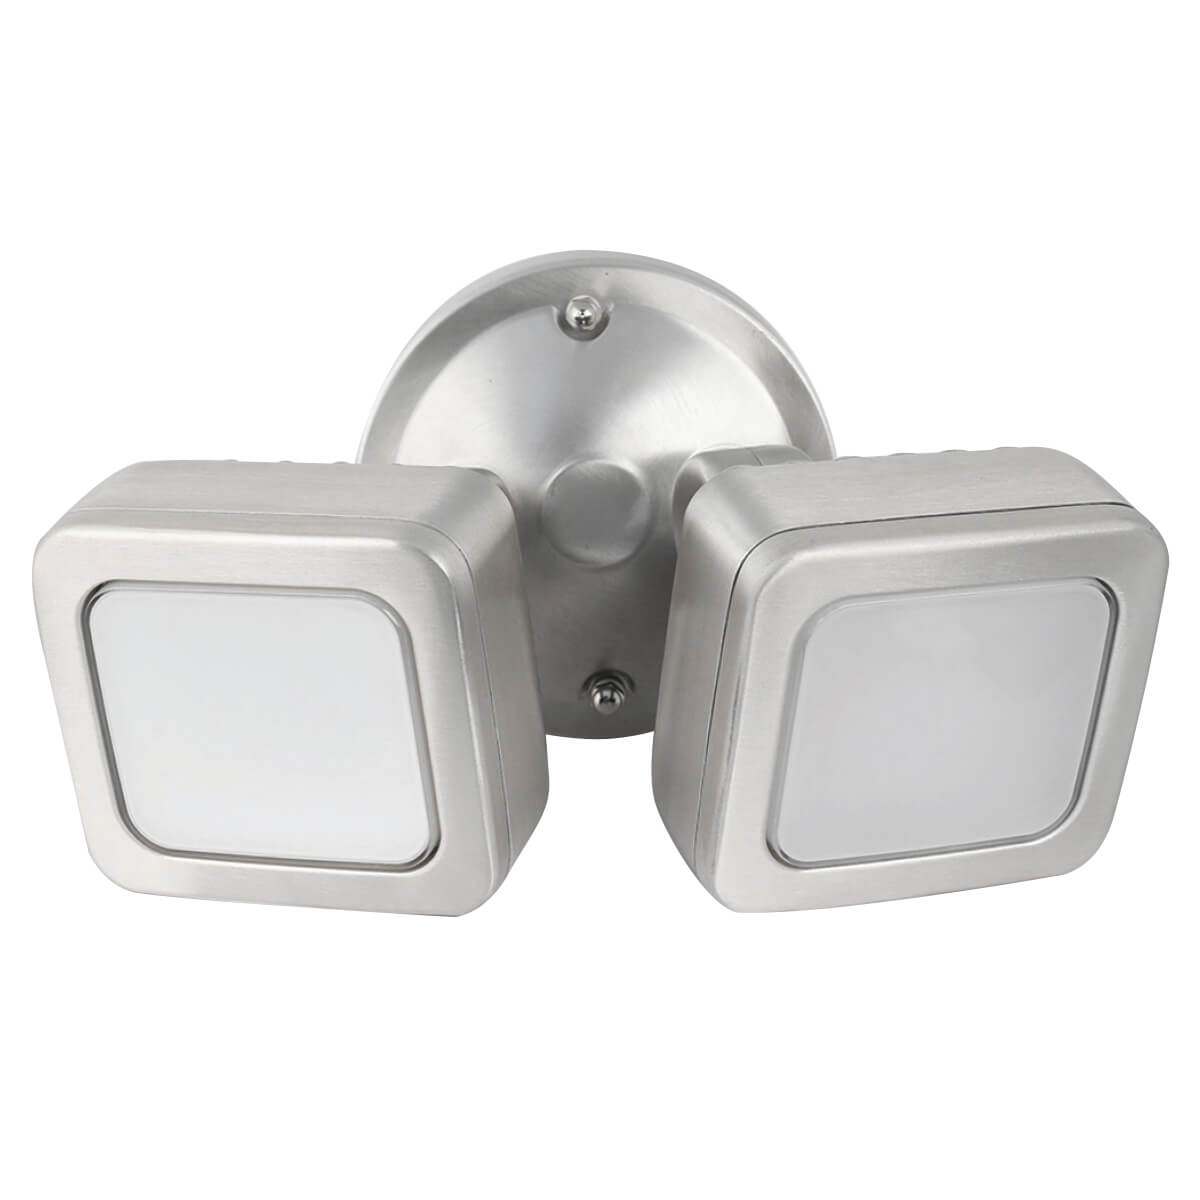 Security outdoor light fixture